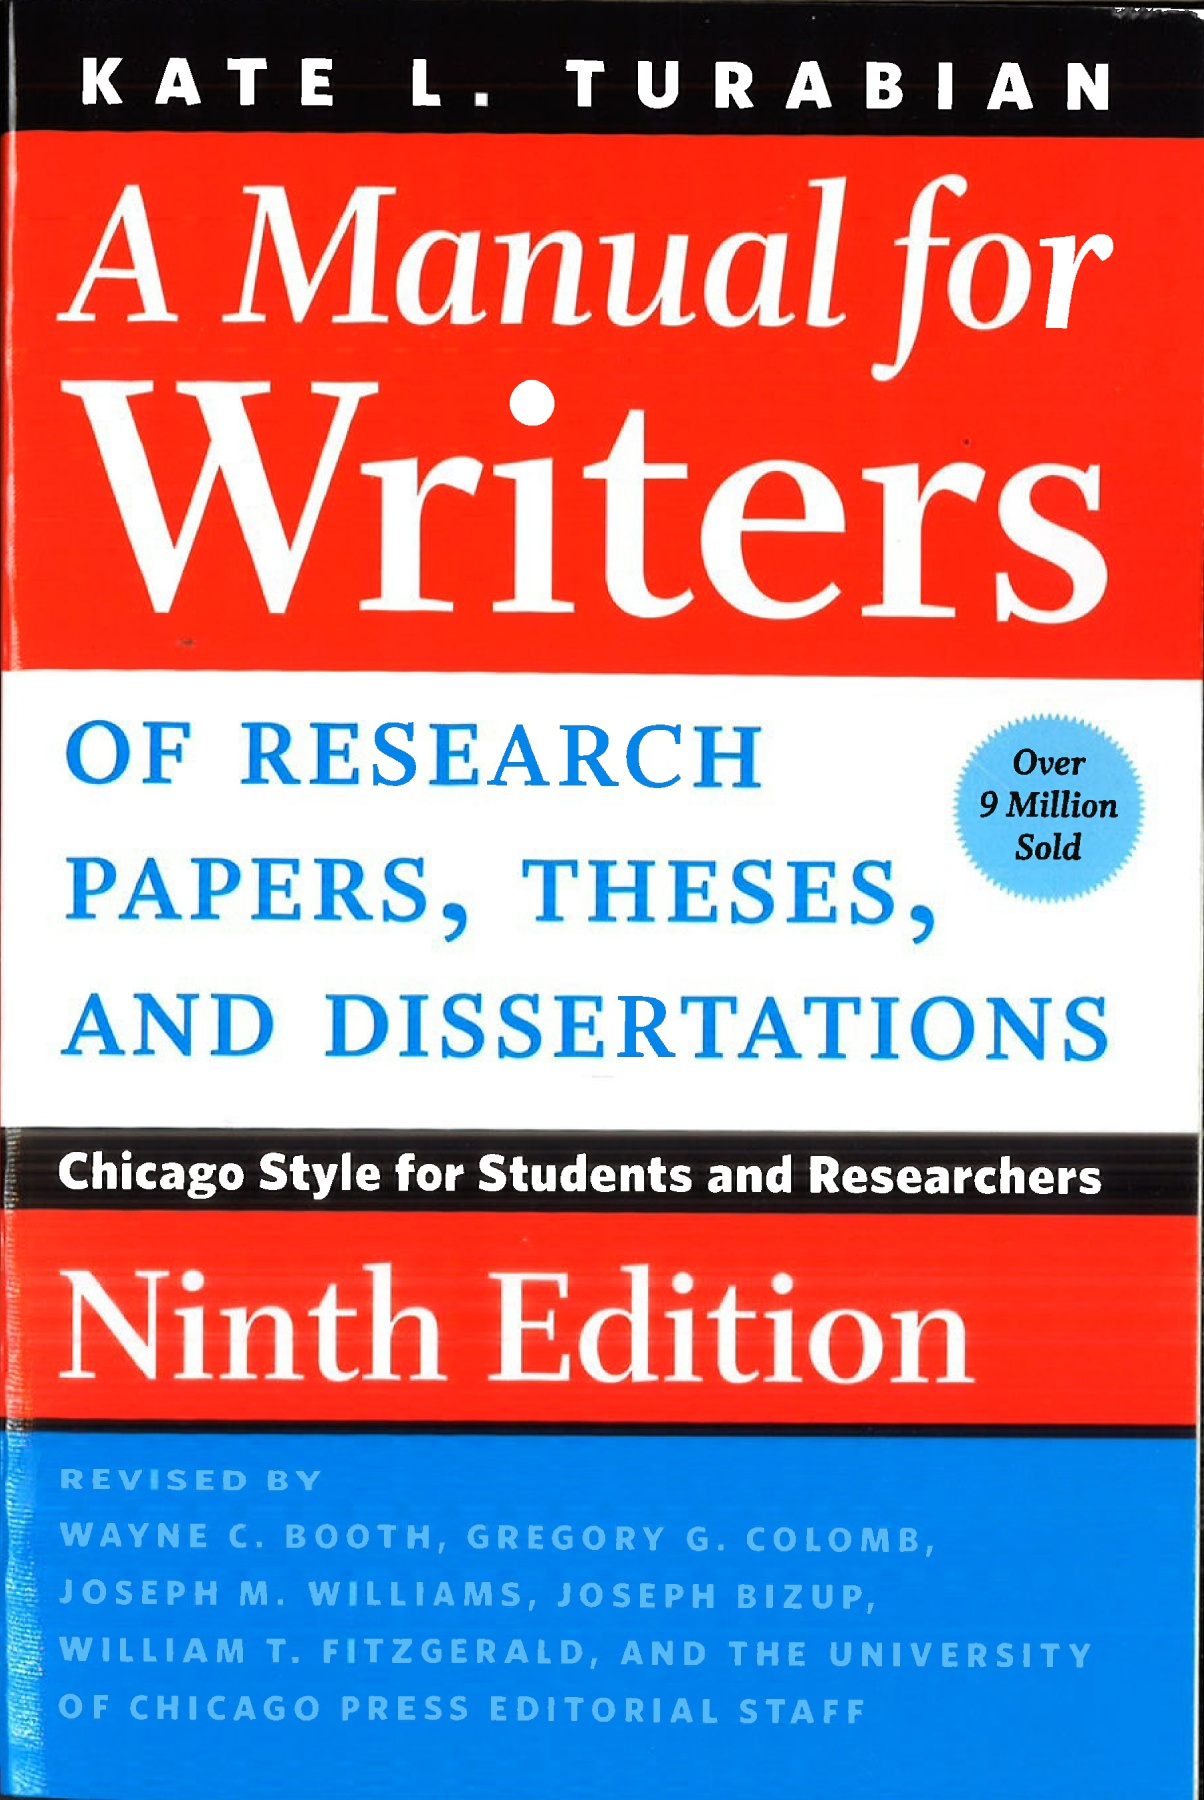 008 Research Paper Manual For Writers Of Papers Theses And Sensational A Dissertations Ed. 8 Turabian Ninth Edition Full